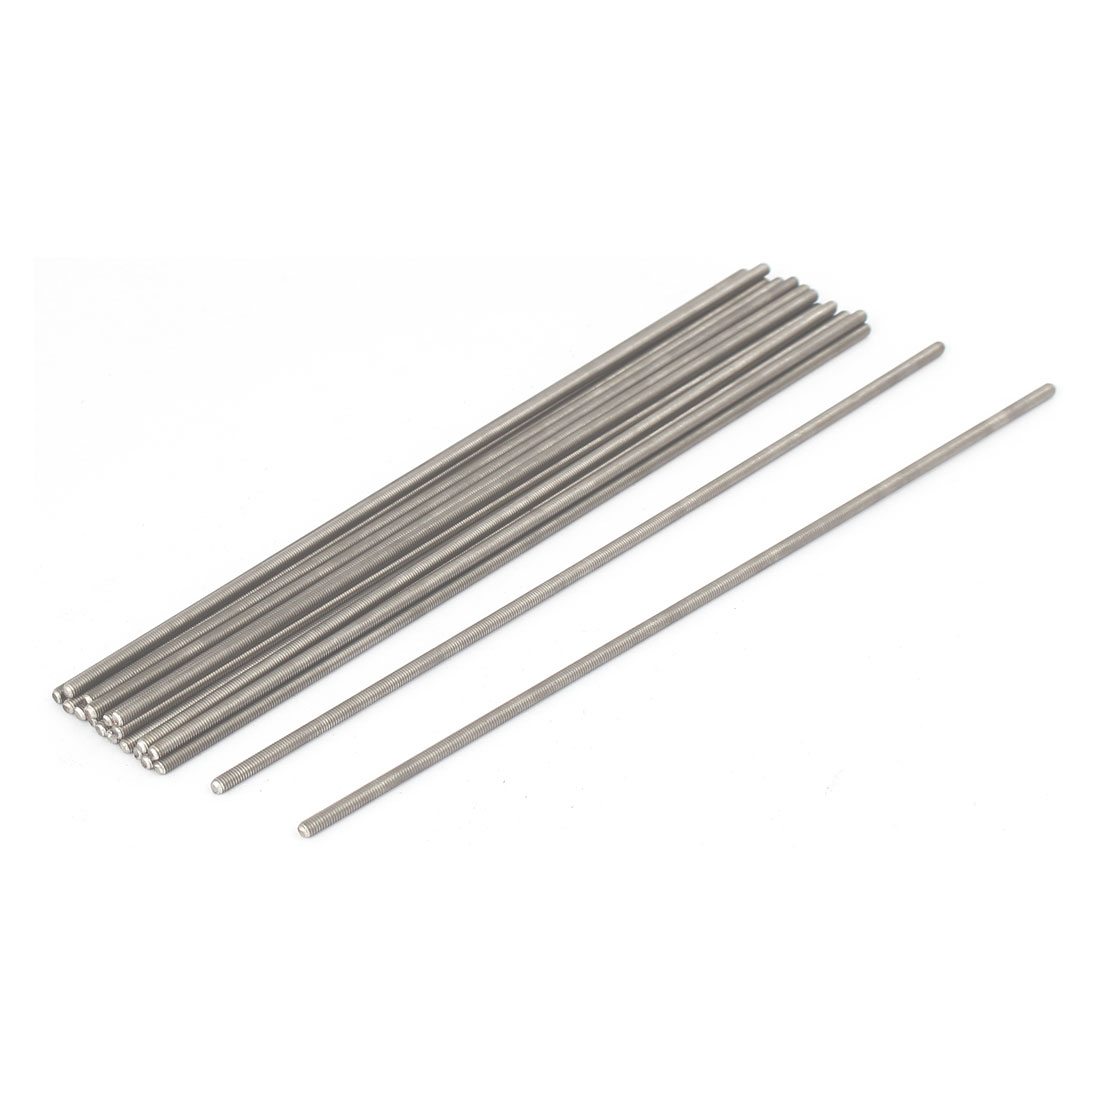 M3 x 180mm 0.5mm Pitch 304 Stainless Steel Fully Threaded Rods Fasteners 20 Pcs